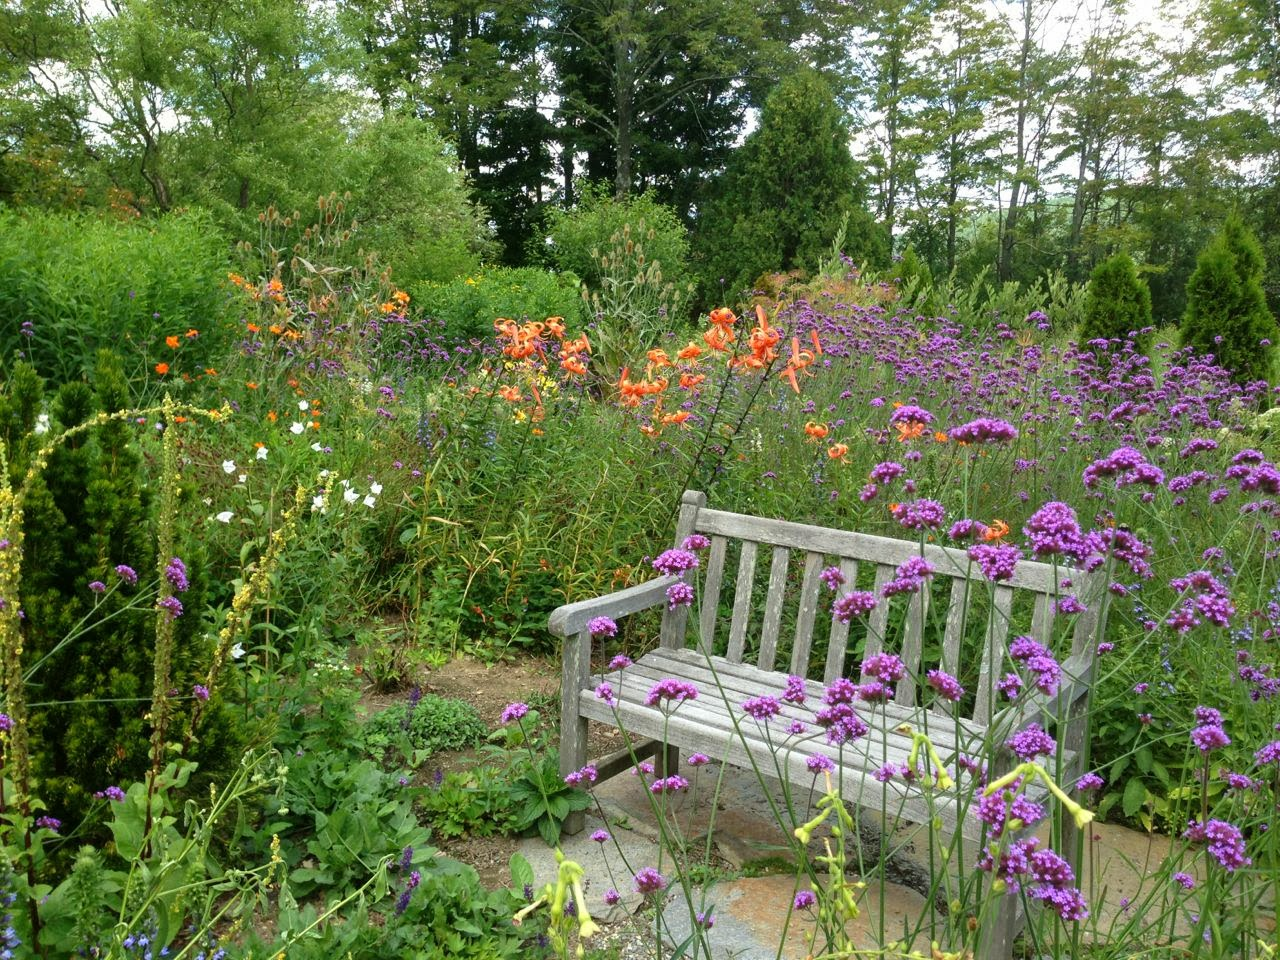 Collage of Life: A Country Garden in Vermont